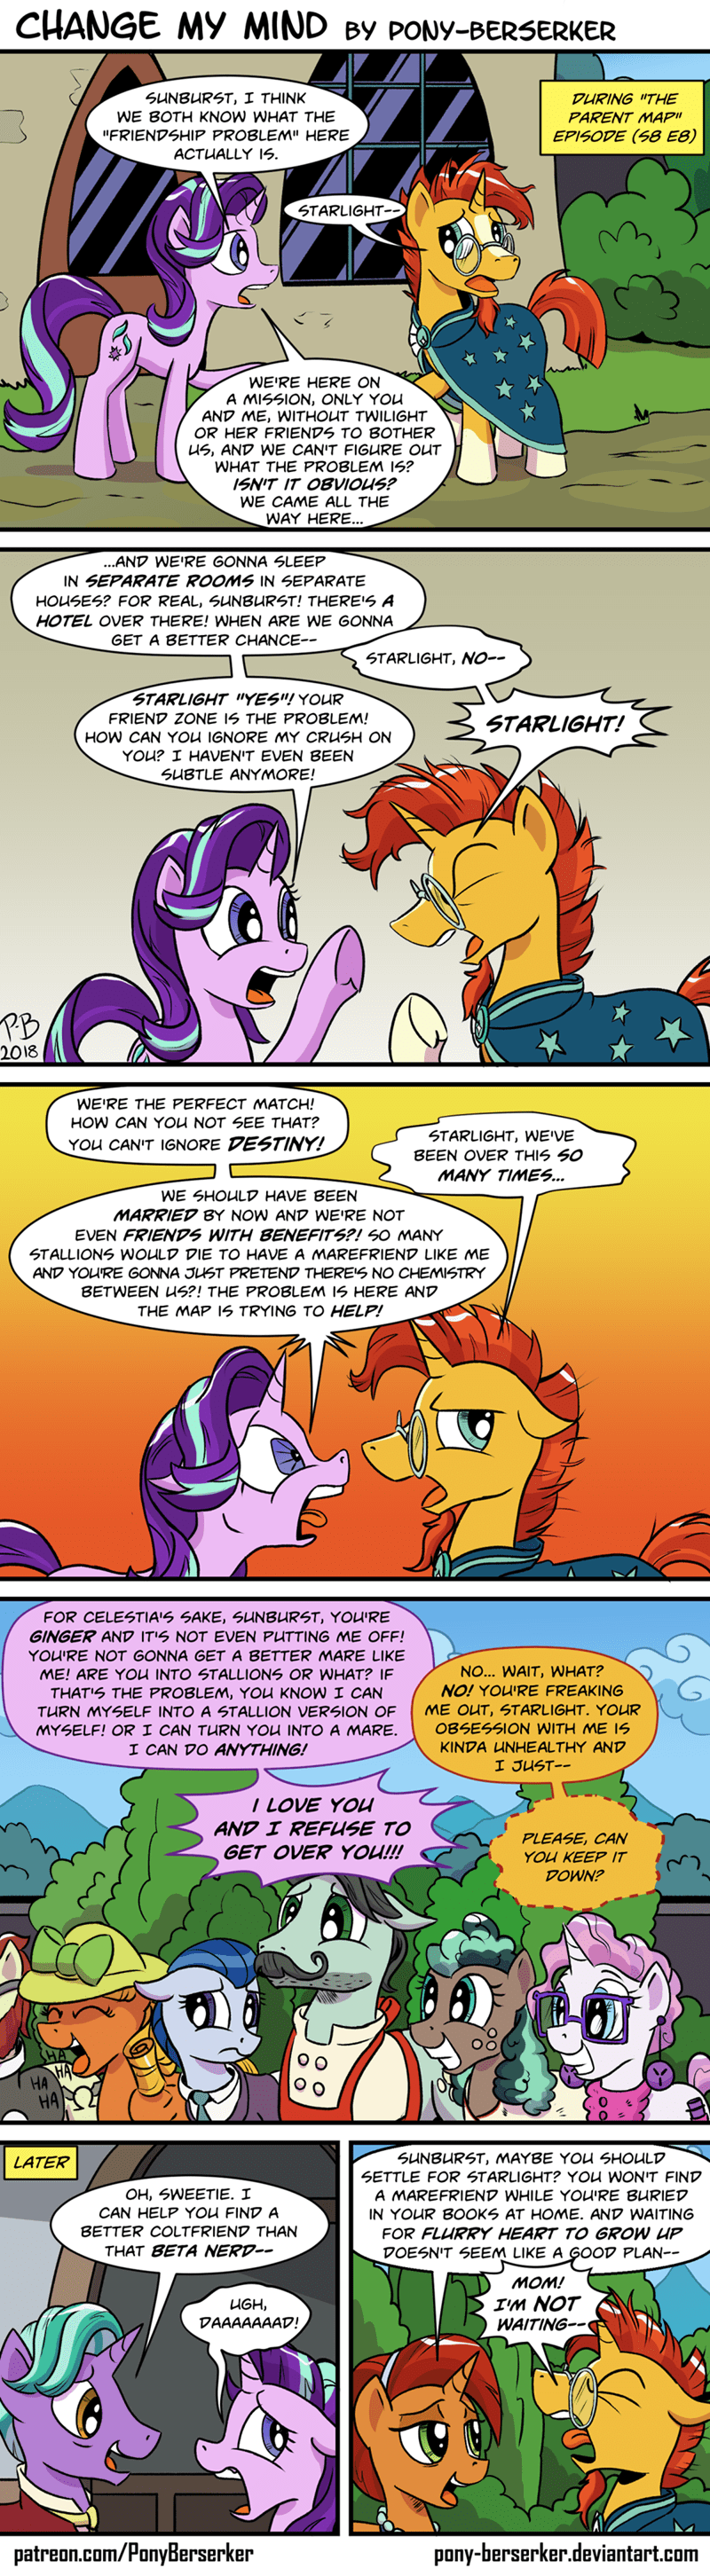 firelight the parent map sunburst starlight glimmer pony-berserker comic stellar flare - 9165841664